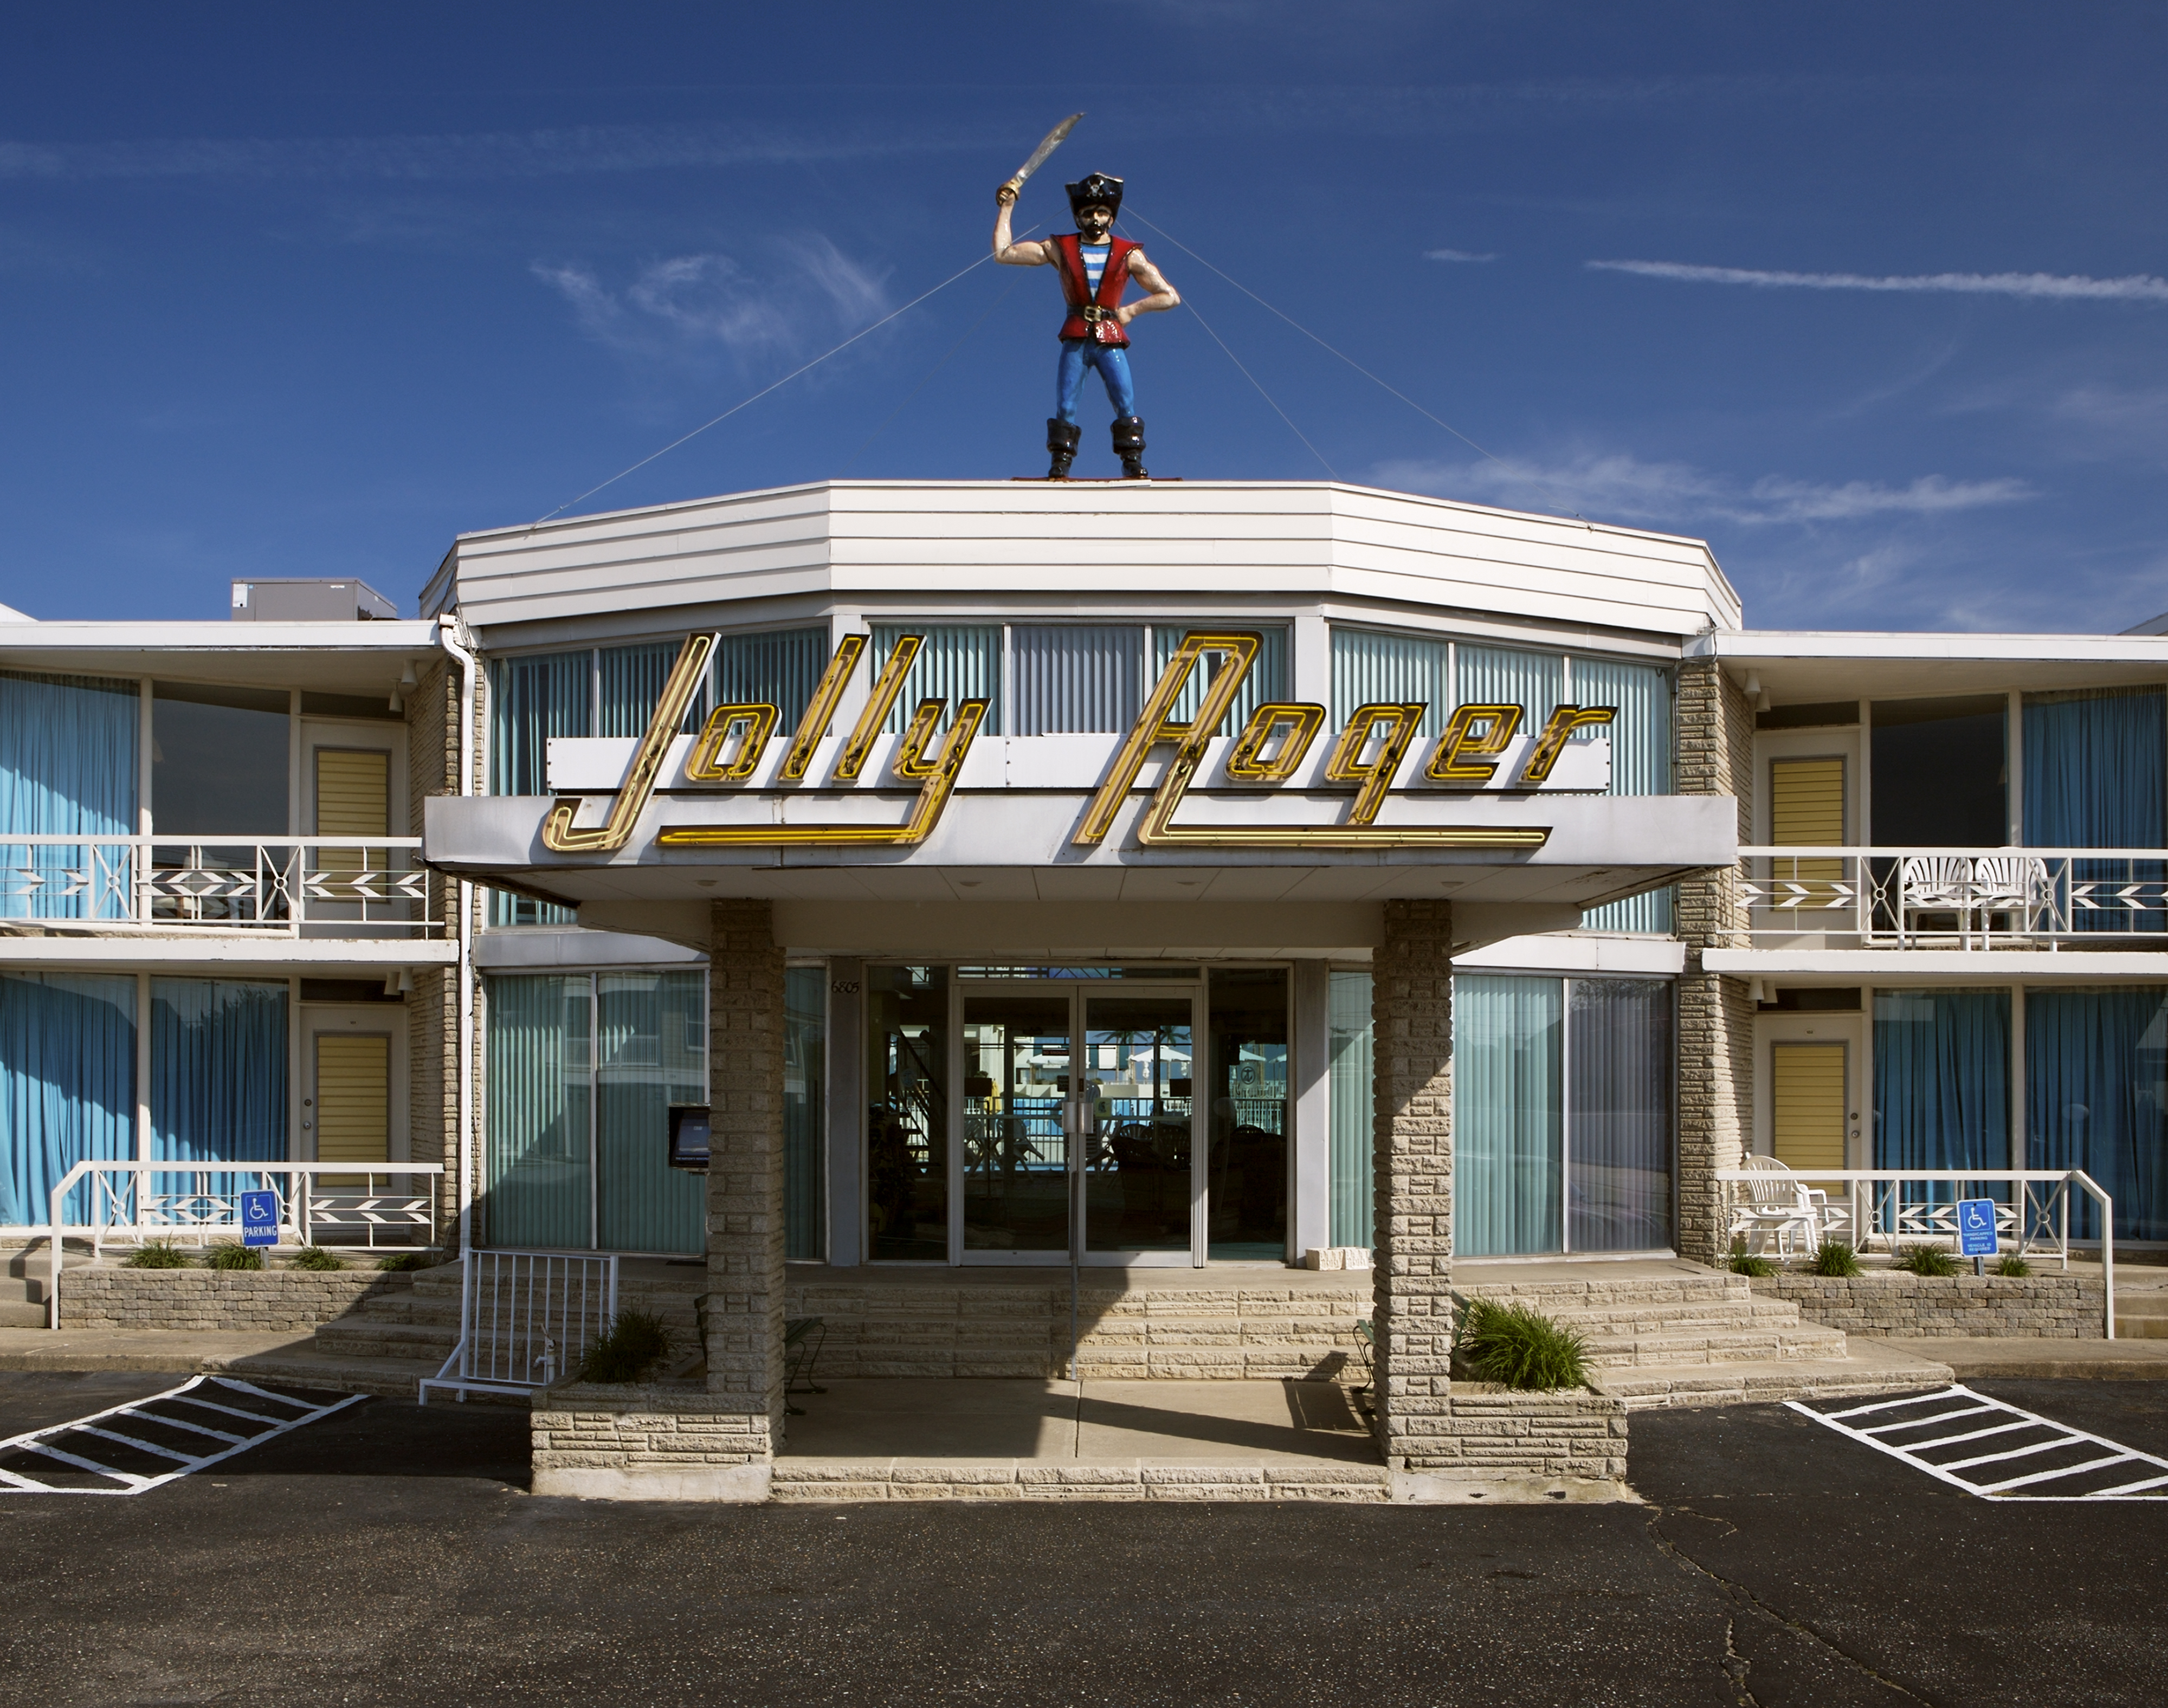 The Lost Midcentury Modern Motels of Wildwood - Curbed Philly